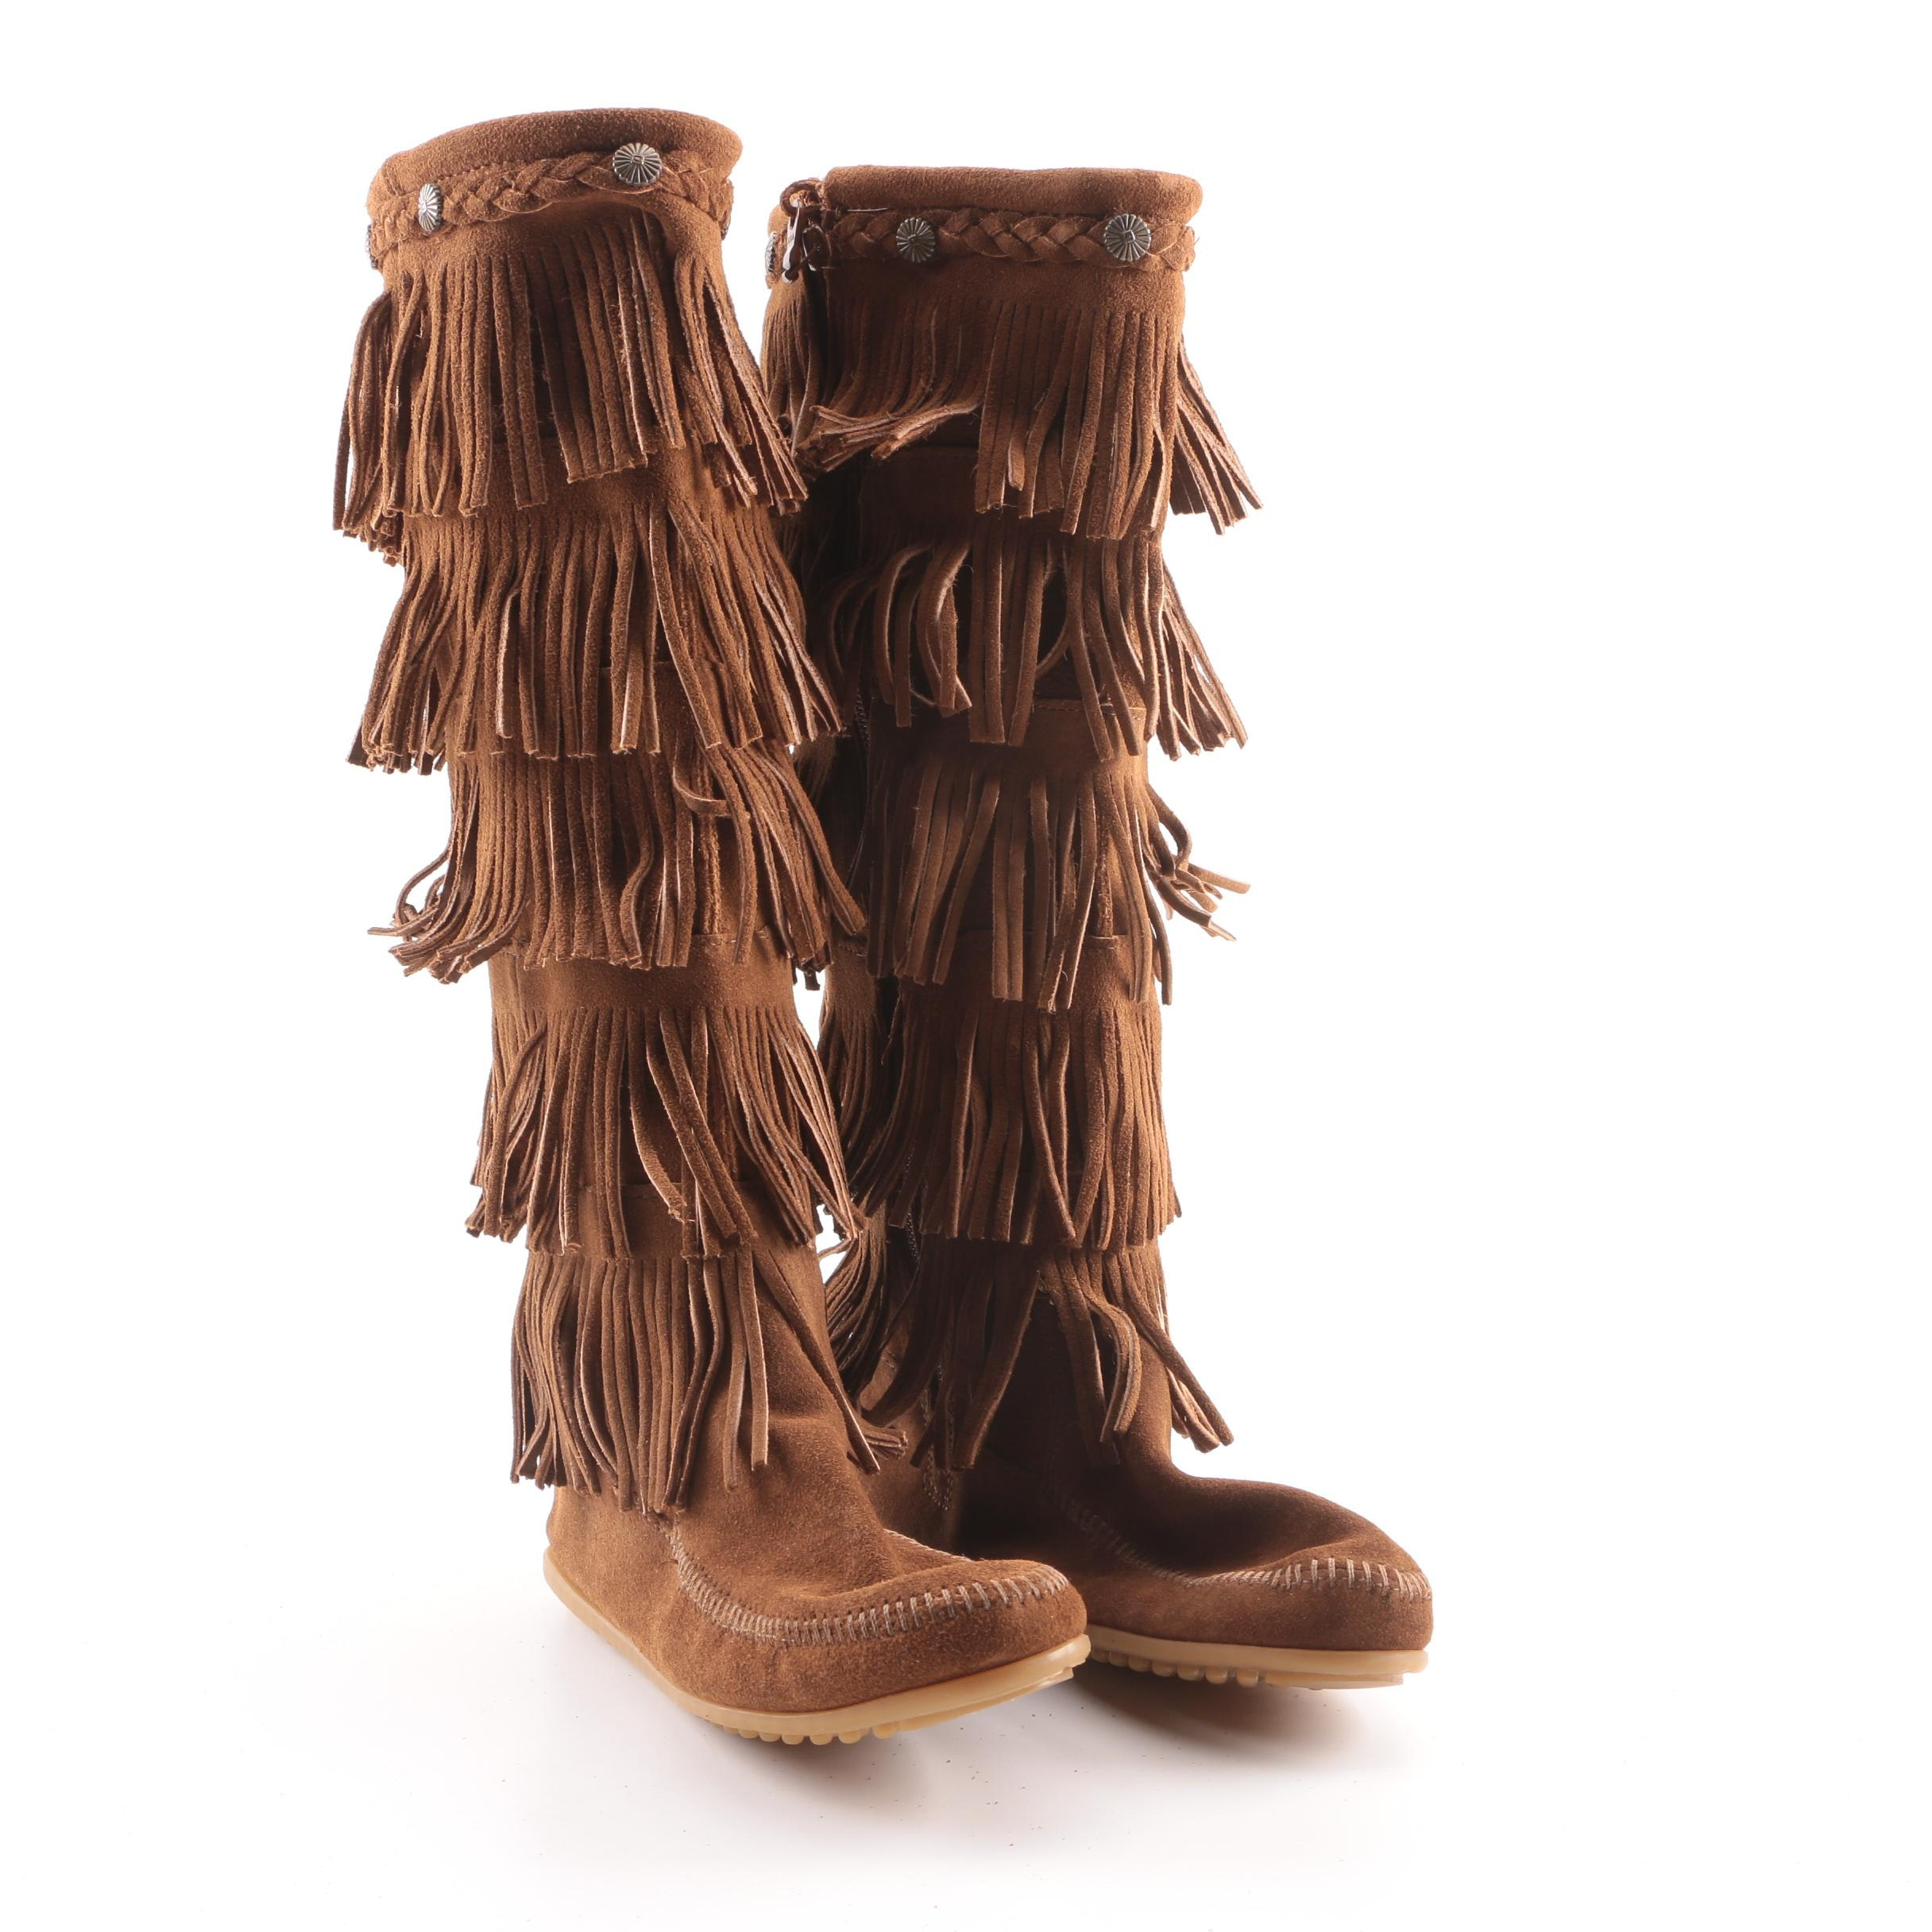 Women's Minnetonka Brown Suede Fringe Moccasin Tall Boots